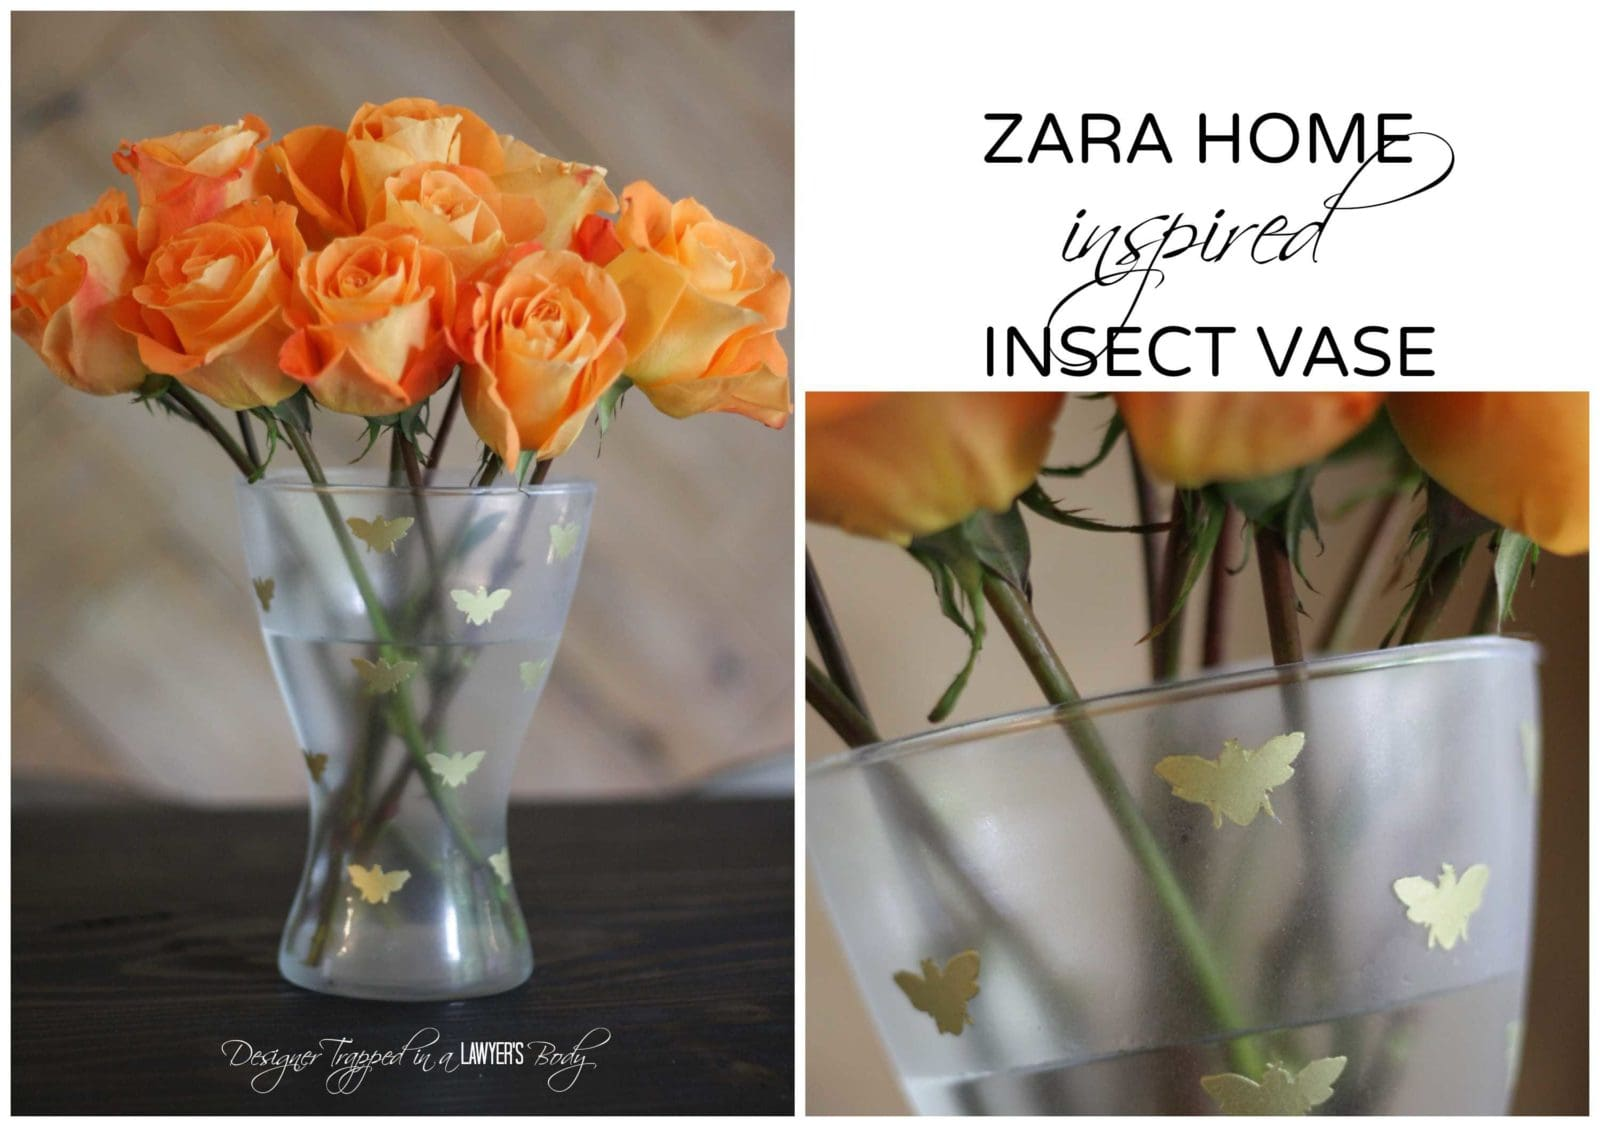 Pin now, read later! Knock off Zara Home Insect Vase by Designer Trapped in a Lawyer's Body. #zarahomeknockoff